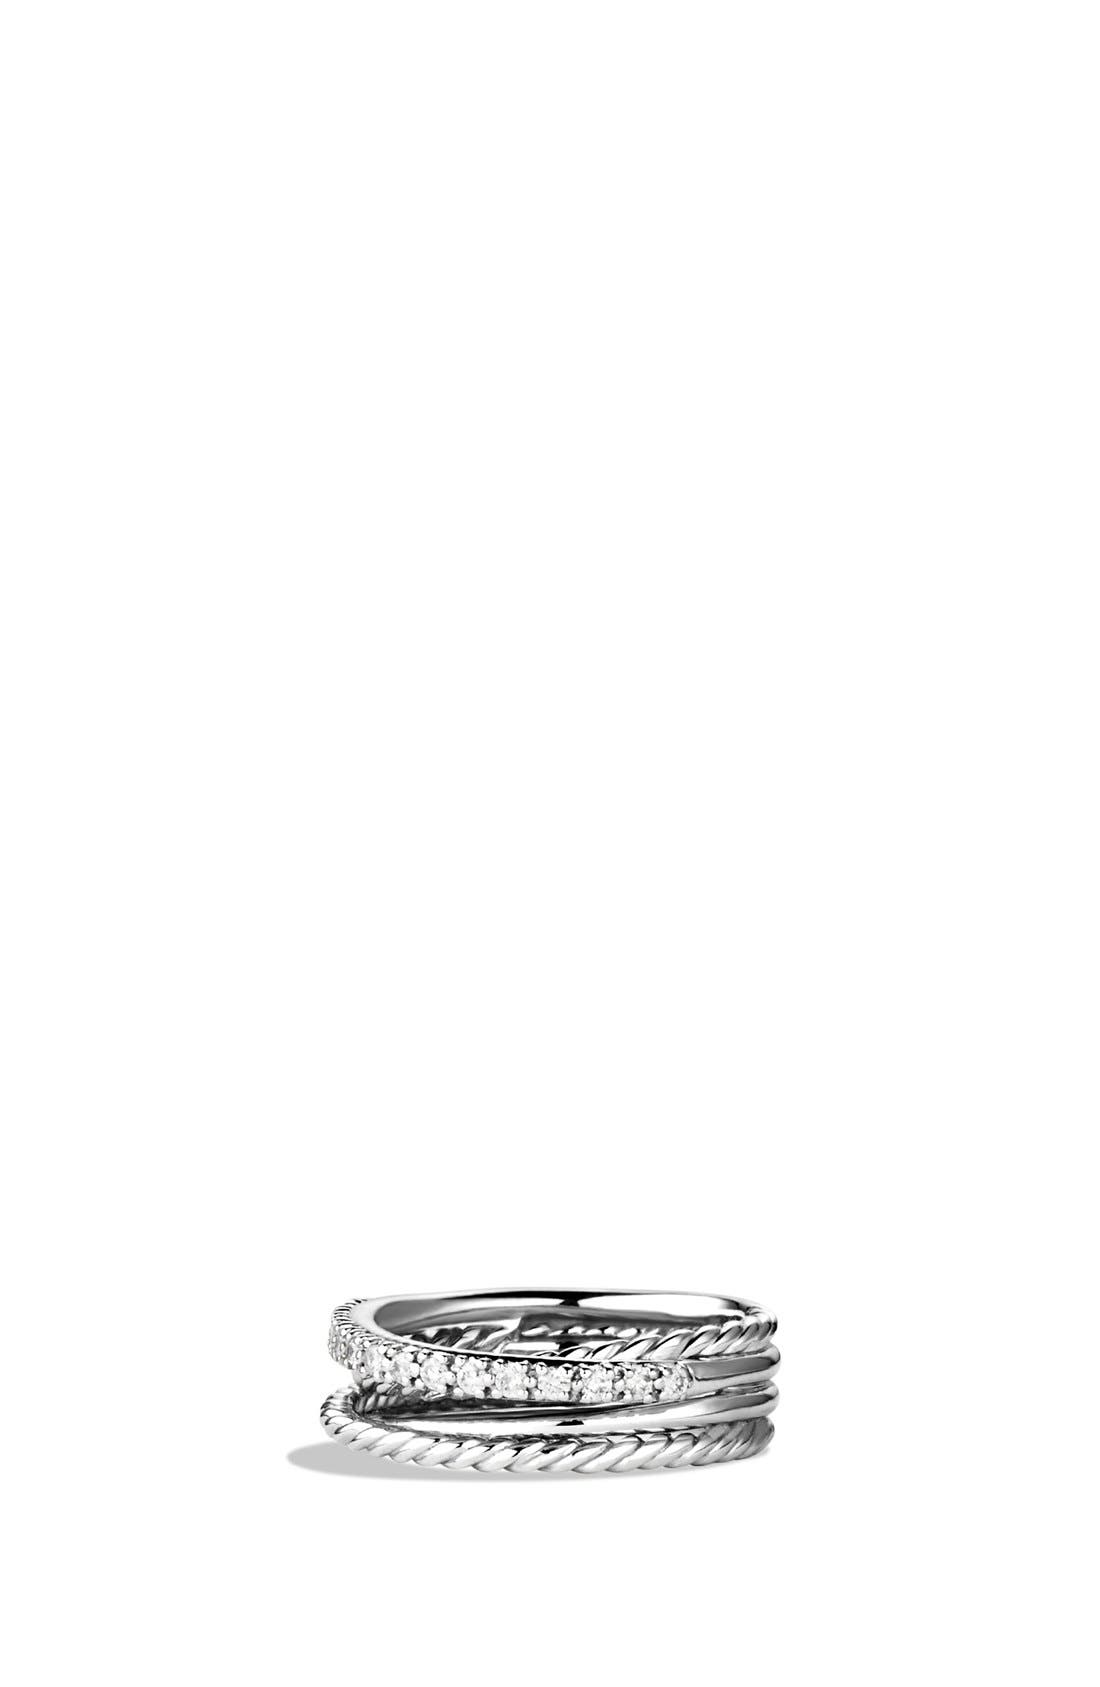 'Crossover' Ring with Diamonds,                         Main,                         color, SILVER/ DIAMOND